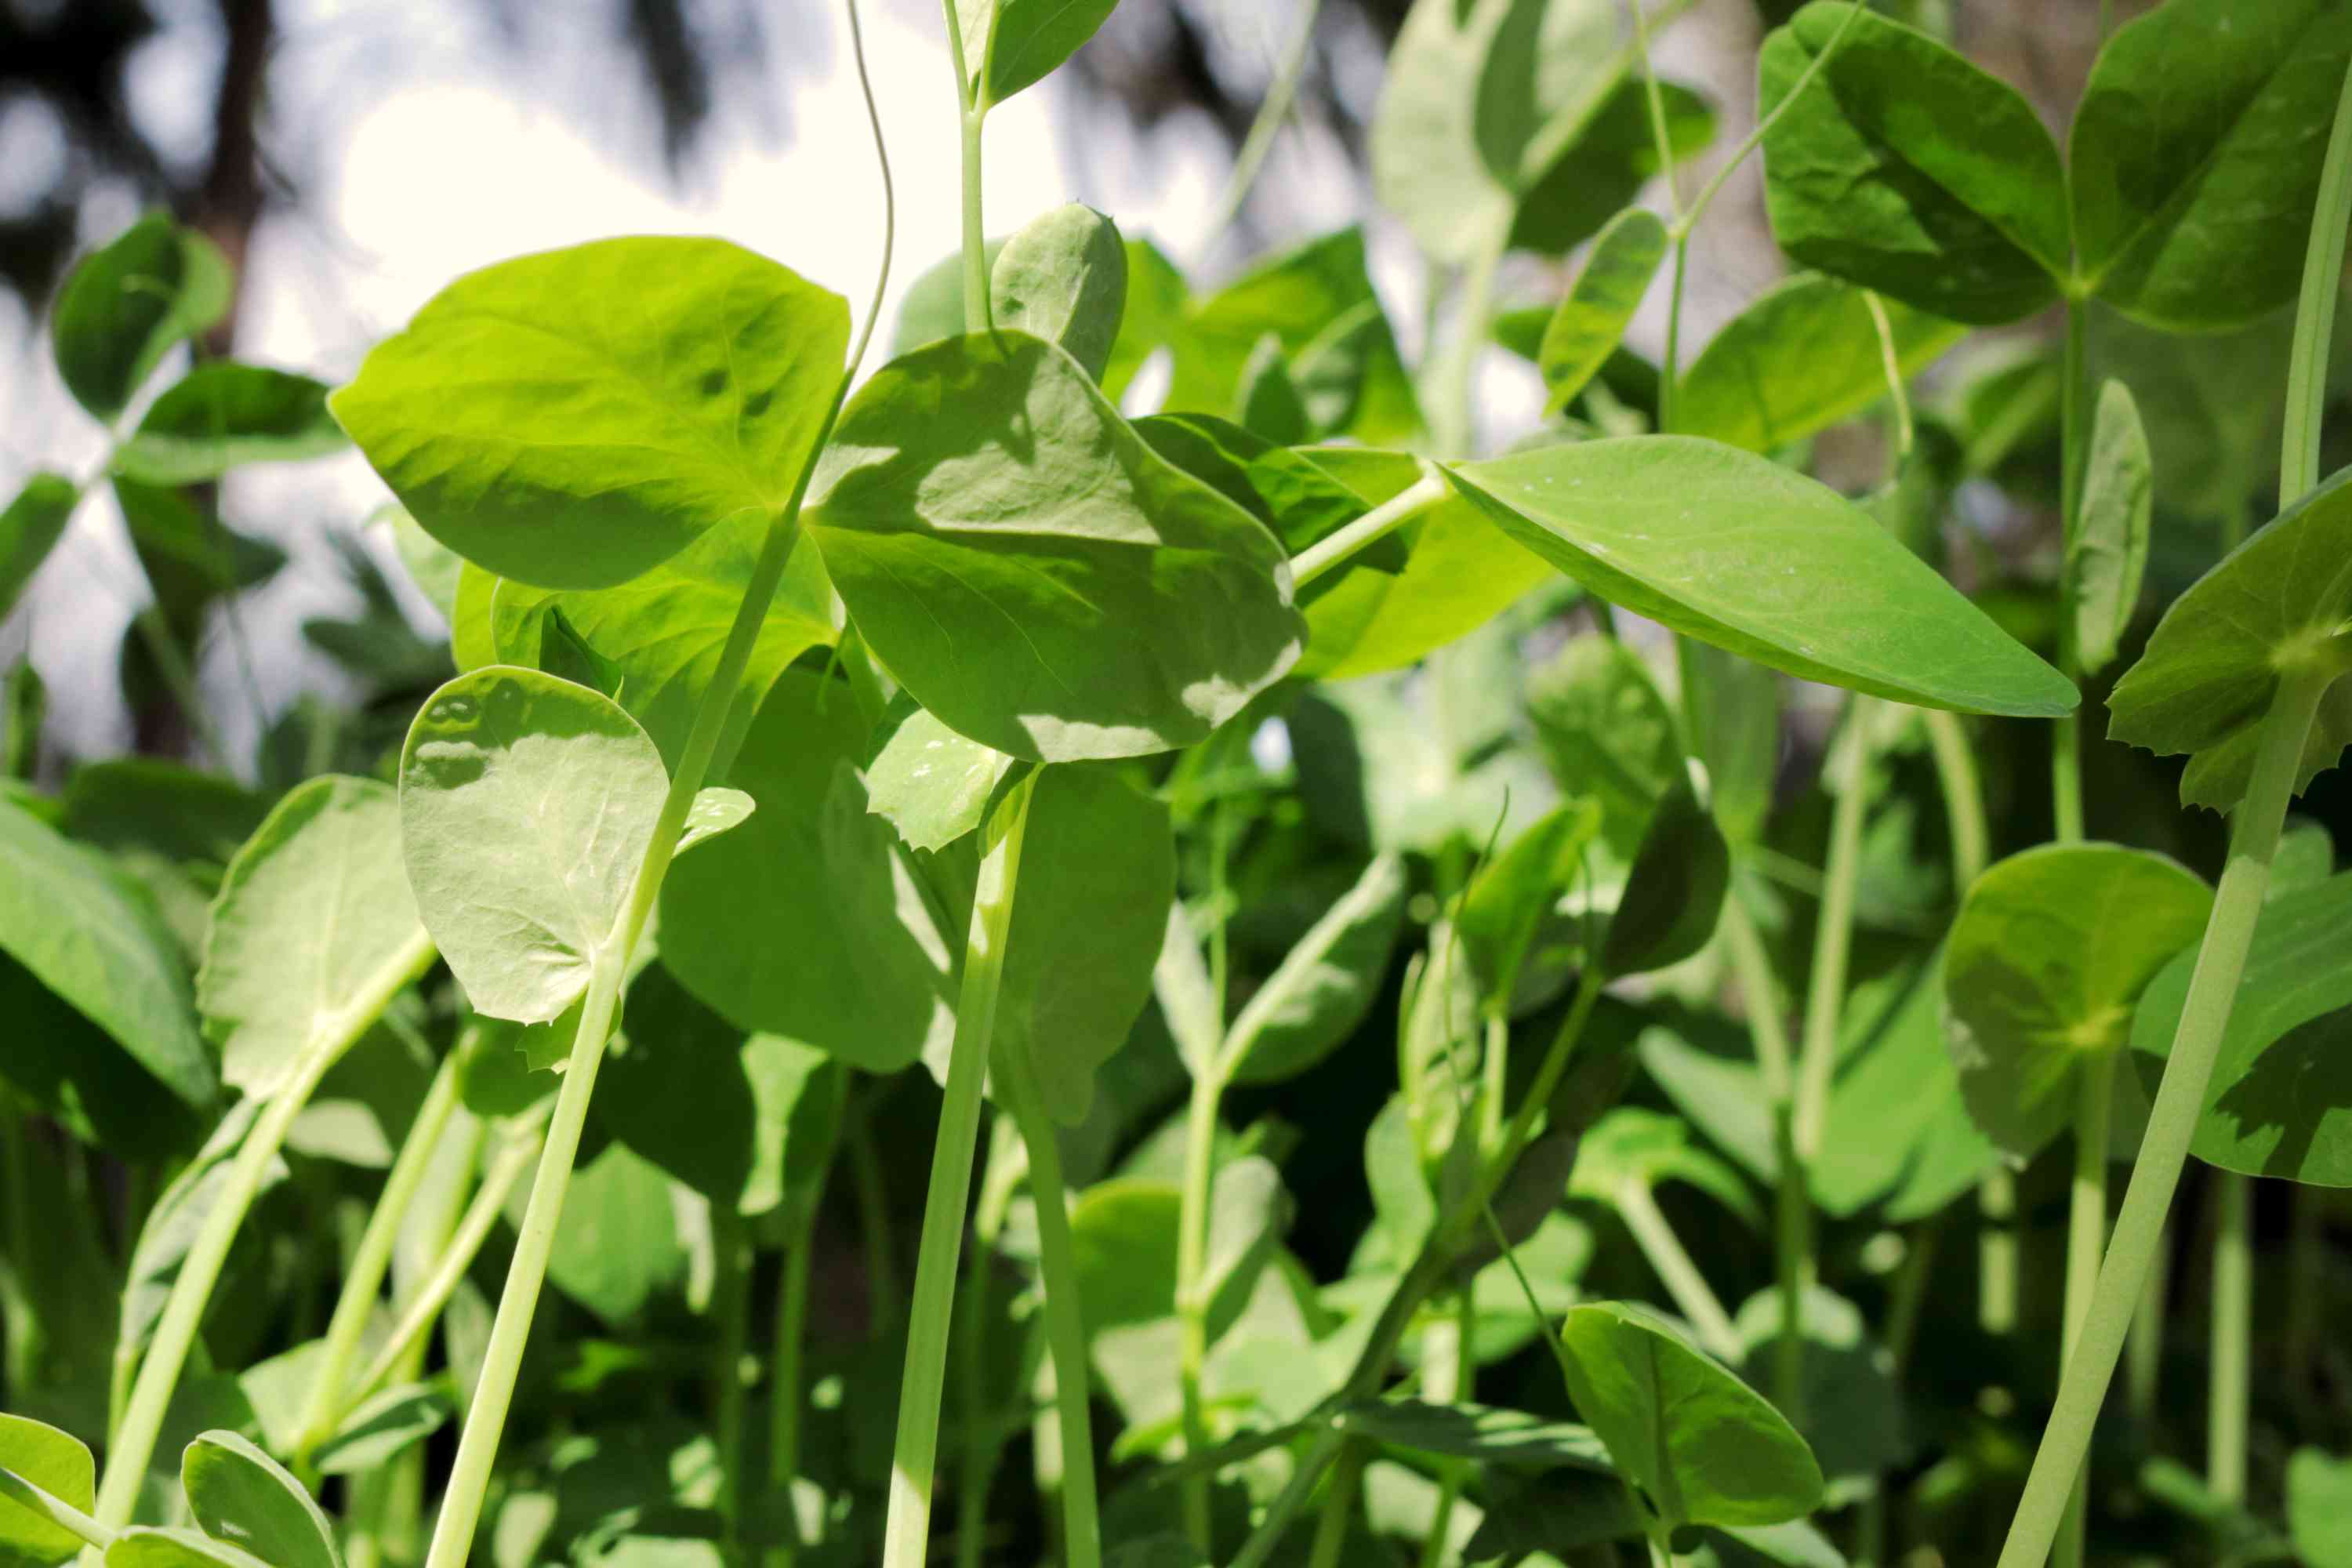 Pea shoots and tendrils growing in sunlight closeup